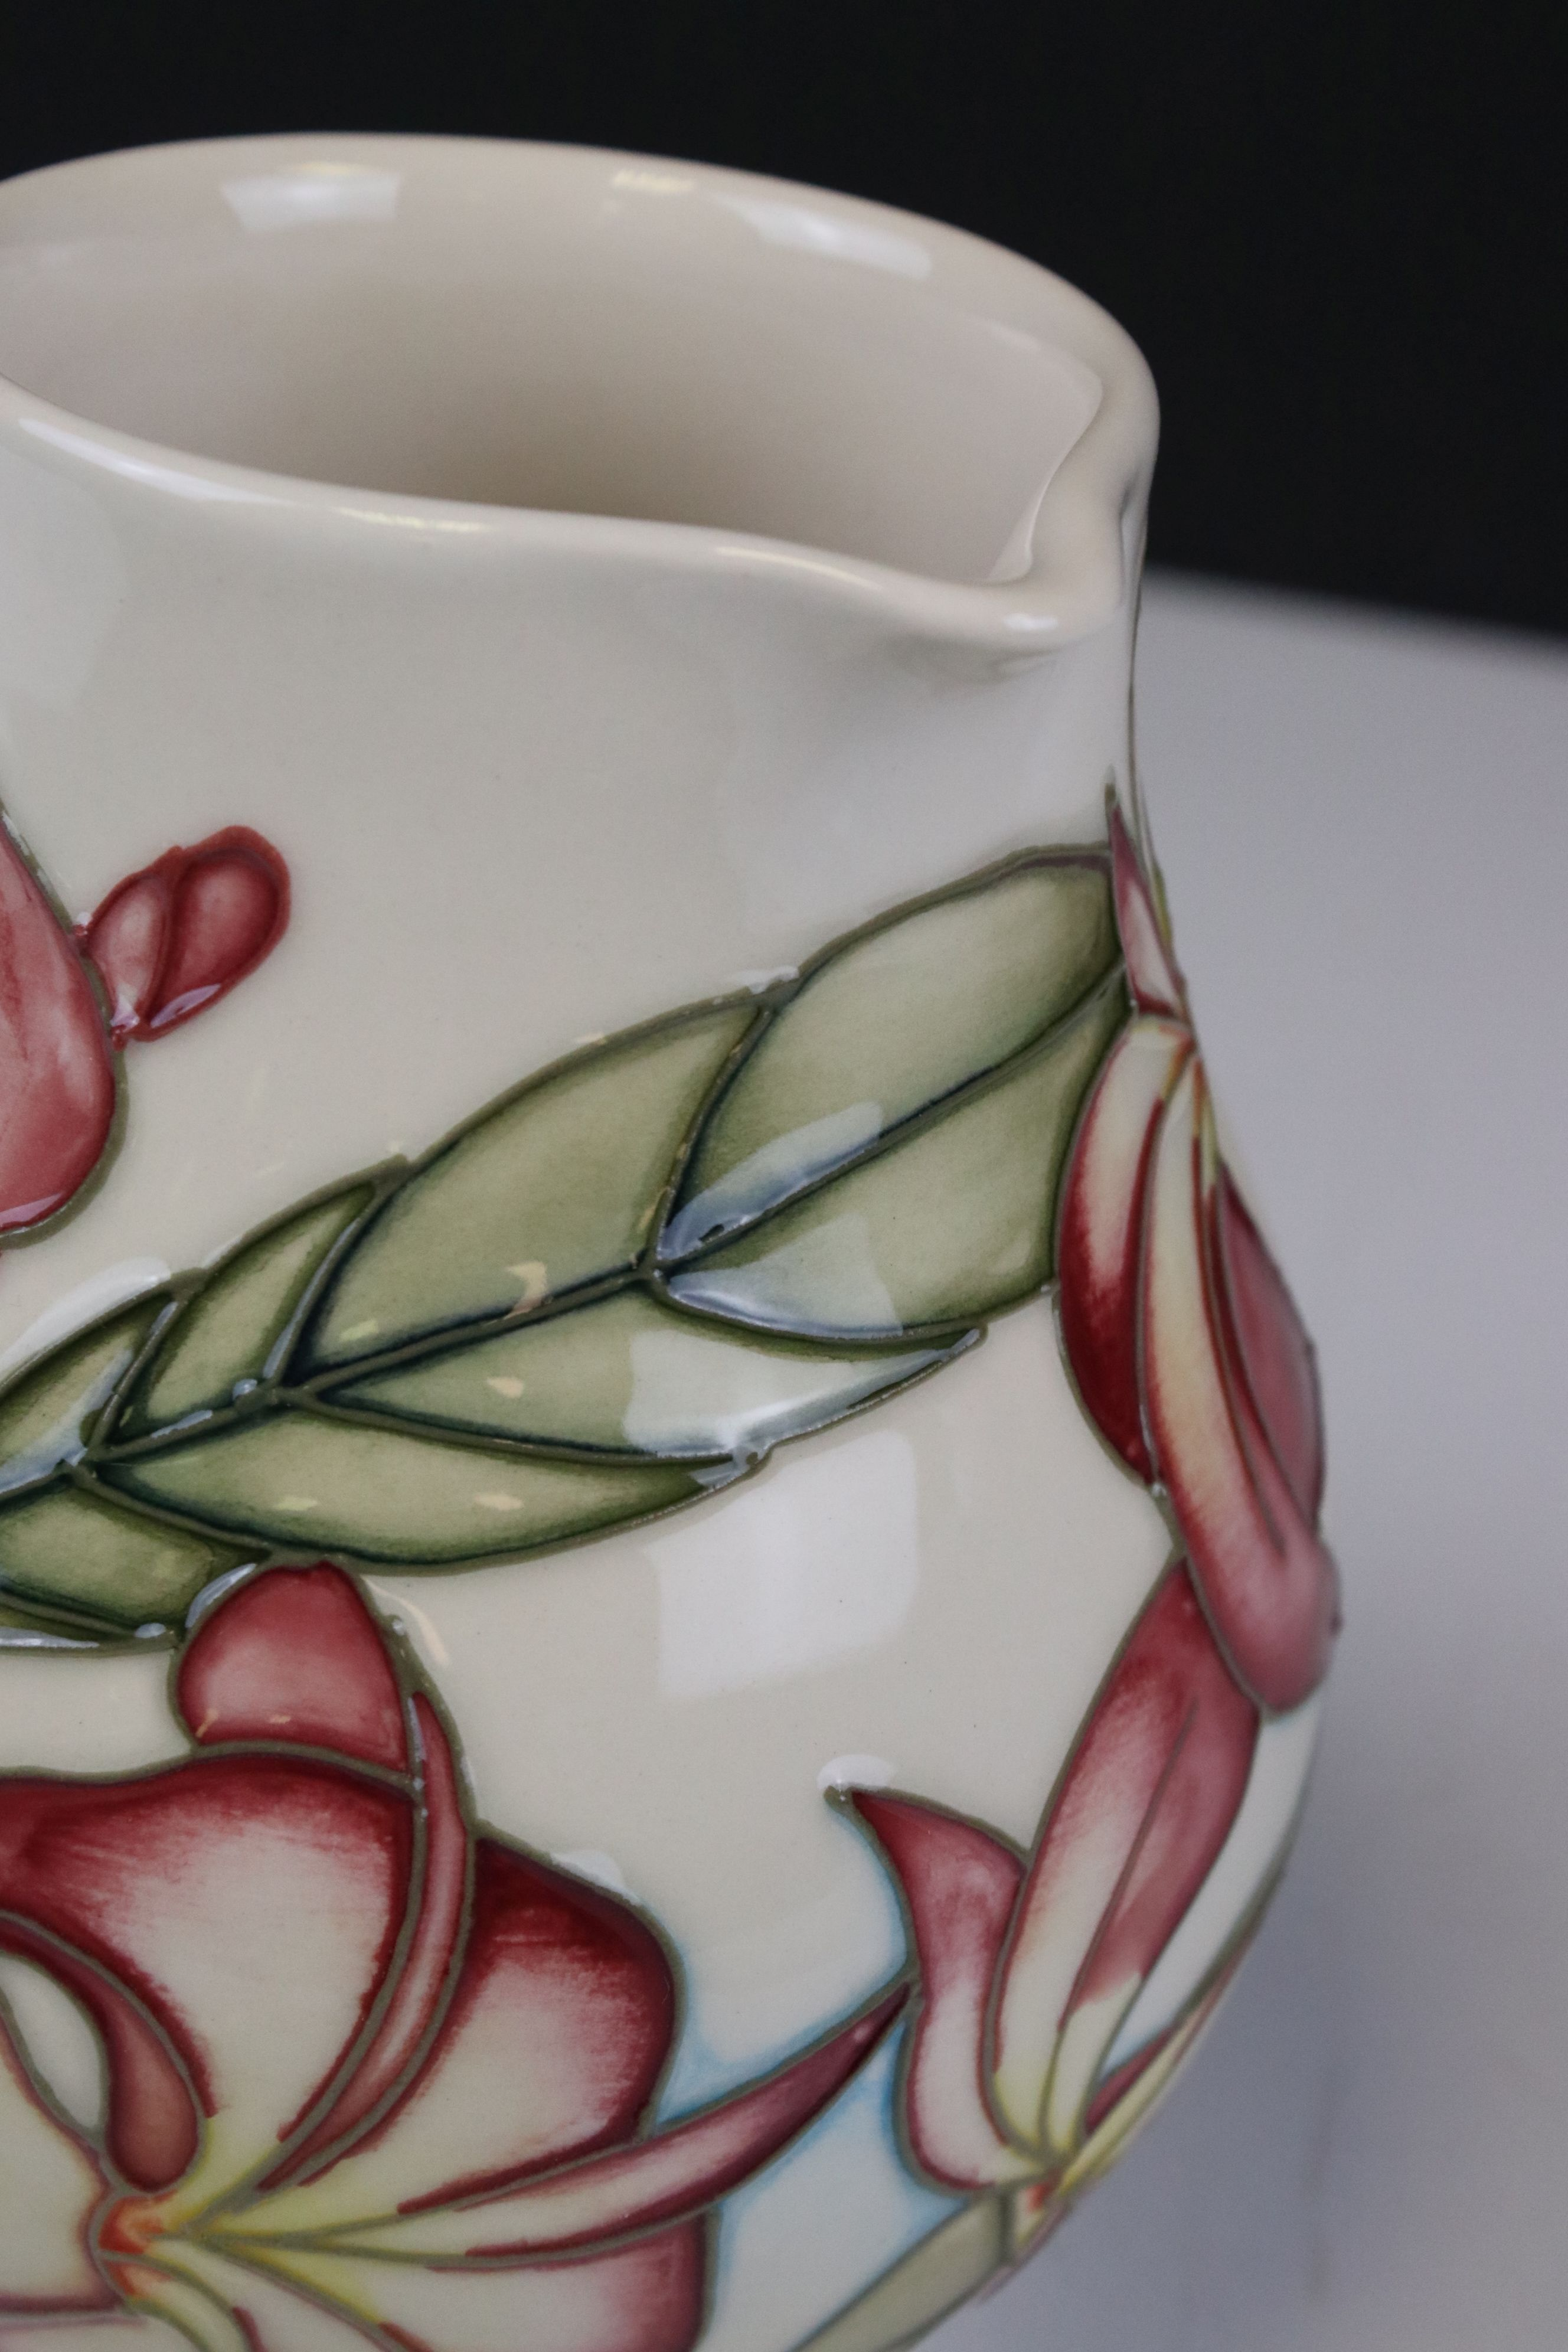 Moorcroft Jug in the Frangipani Plumeria pattern on a white ground, 15cms high - Image 3 of 4